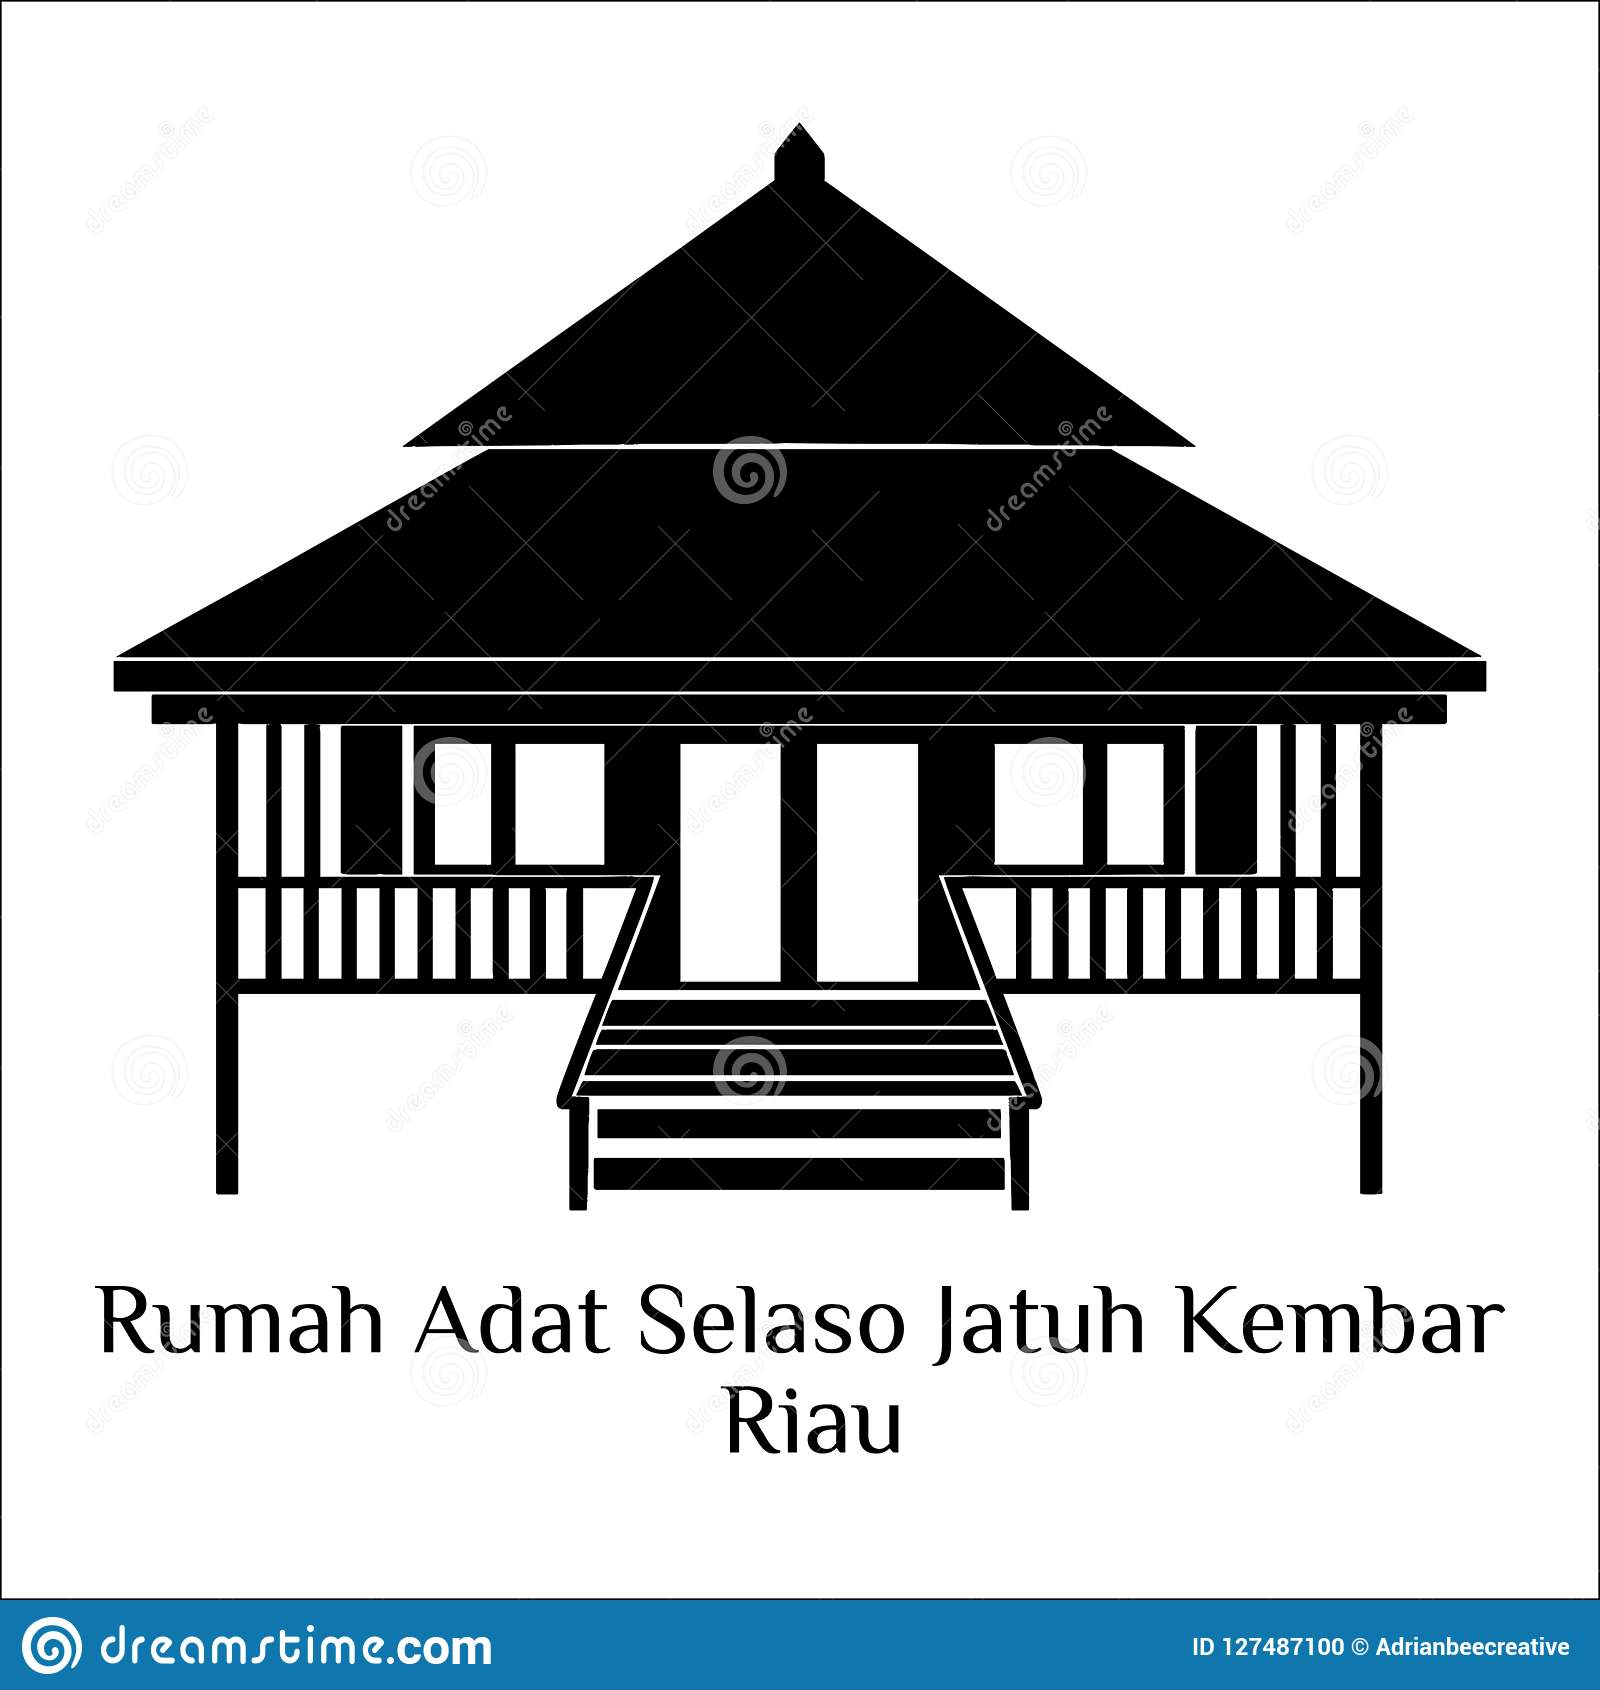 Rumah Adat Stock Illustrations – 6 Rumah Adat Stock